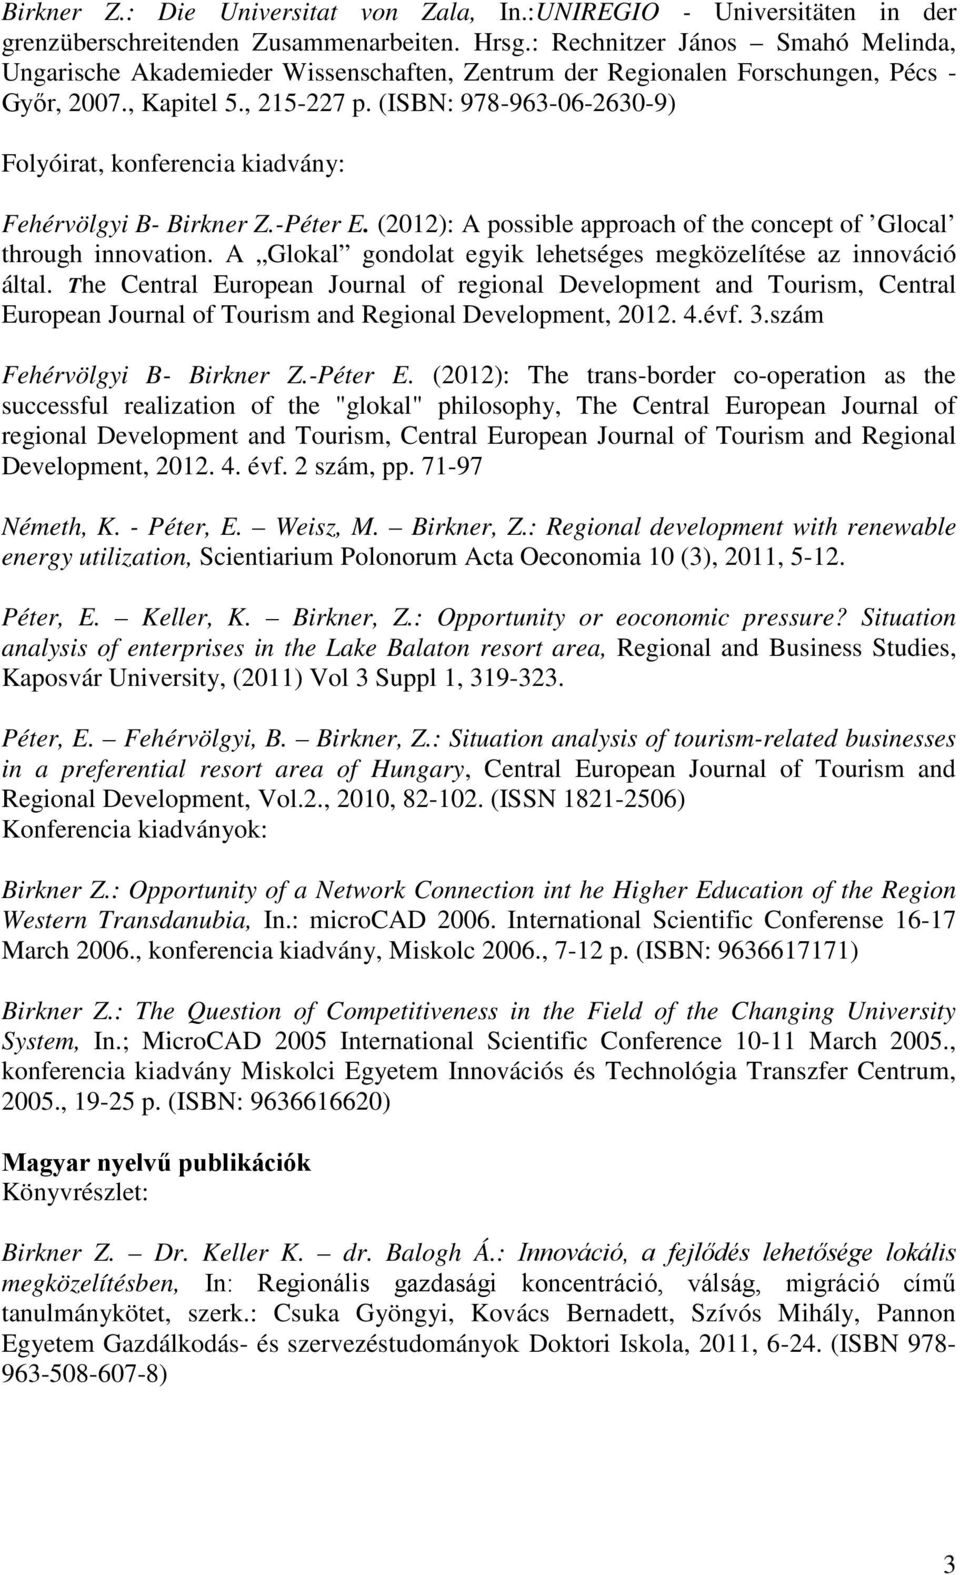 (ISBN: 978-963-06-2630-9) Folyóirat, konferencia kiadvány: Fehérvölgyi B- Birkner Z.-Péter E. (2012): A possible approach of the concept of Glocal through innovation.